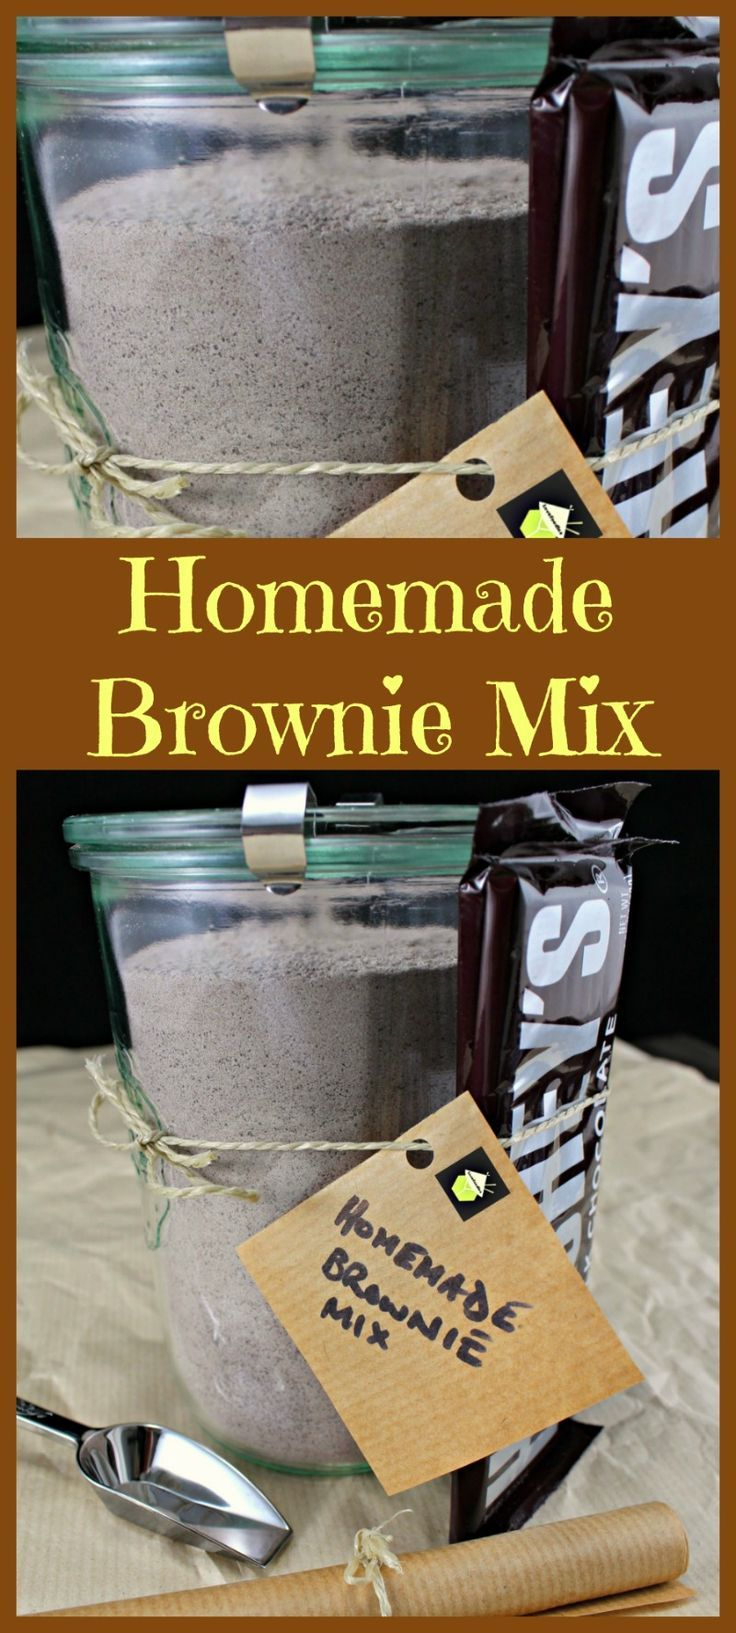 How to Make your Own Brownie Mix - A great idea for busy people or make up for gift packages with a bake pan and whisk! Be creative!